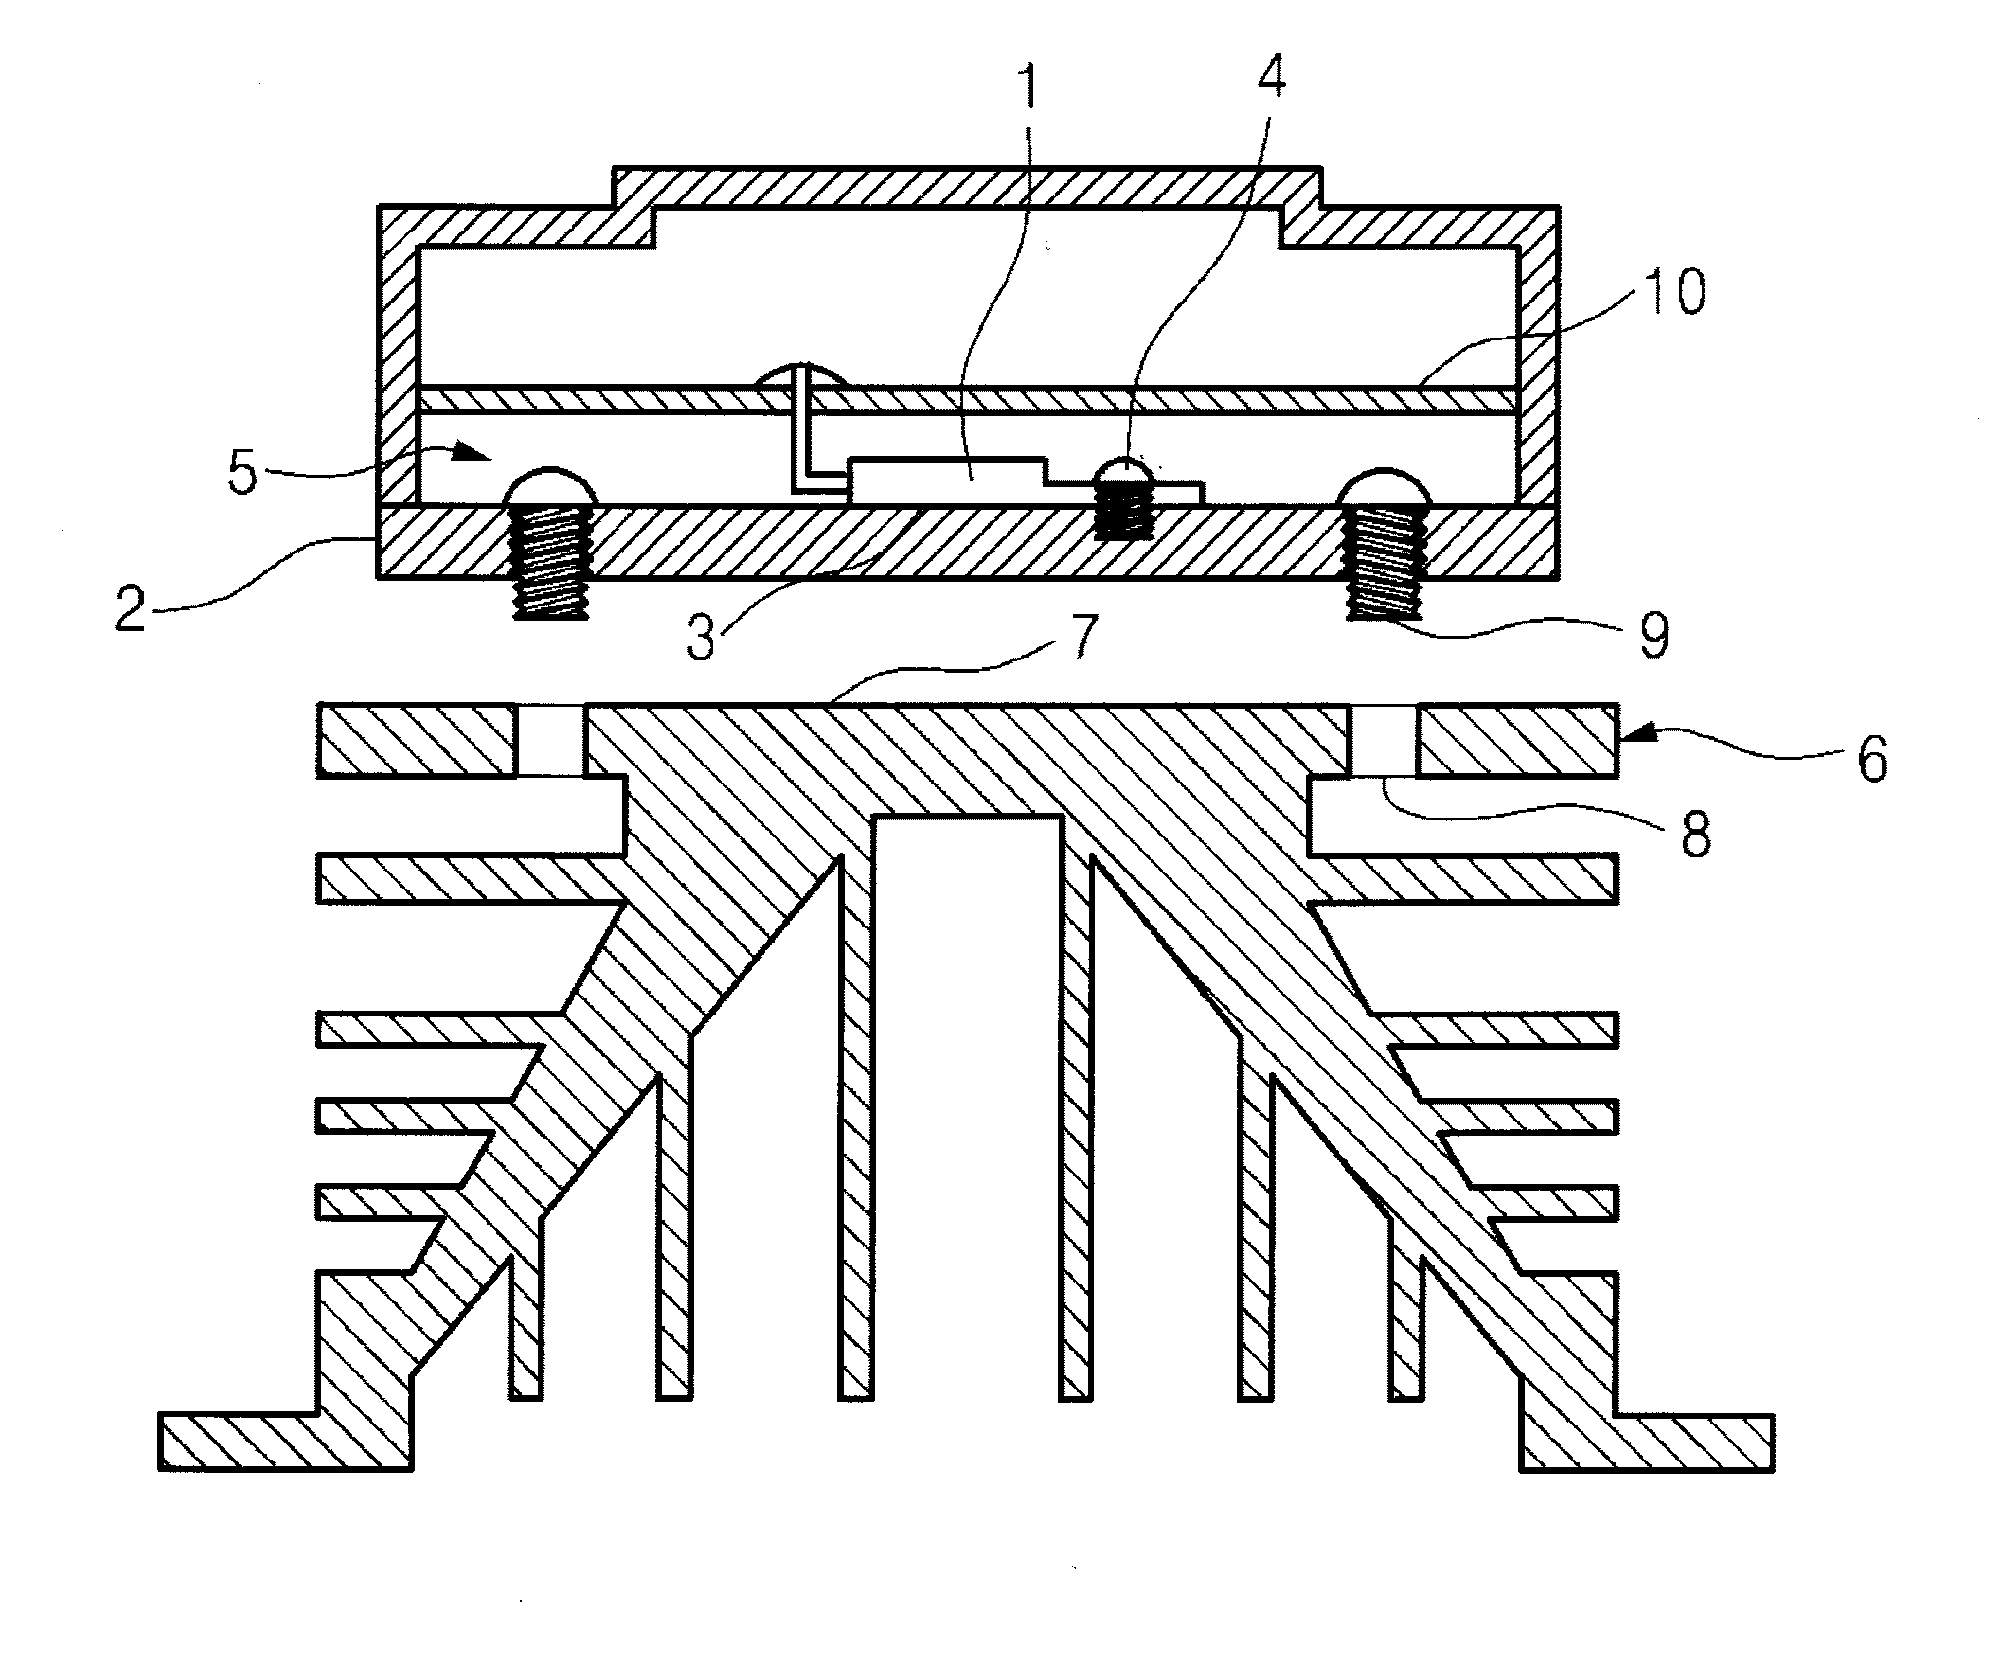 patent wo2012008713a2 - solid state relay